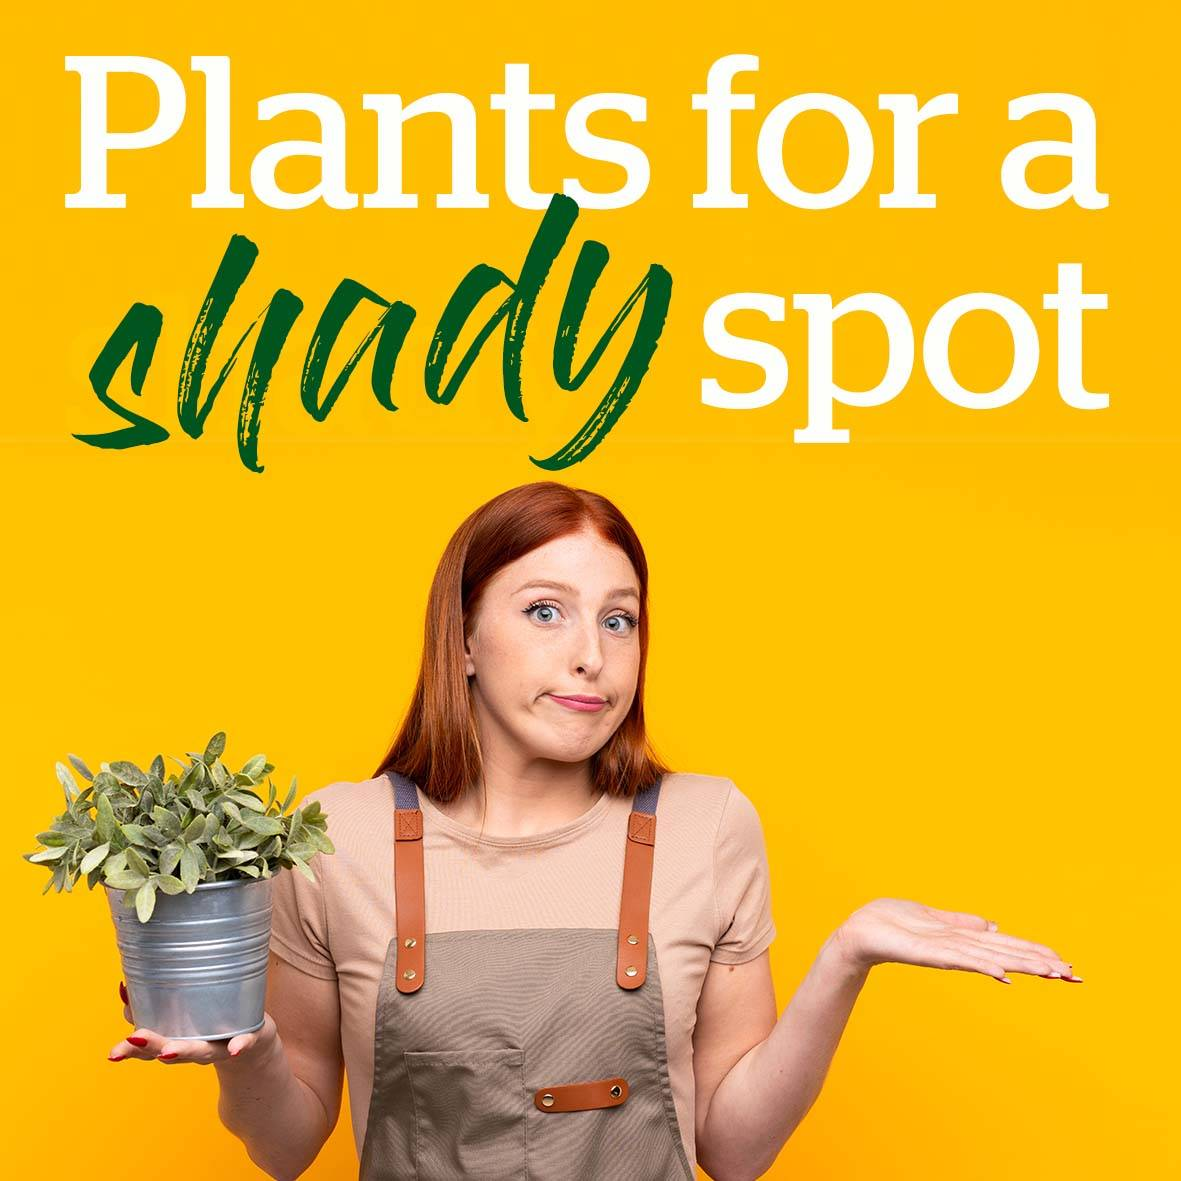 Plants for a shady spot